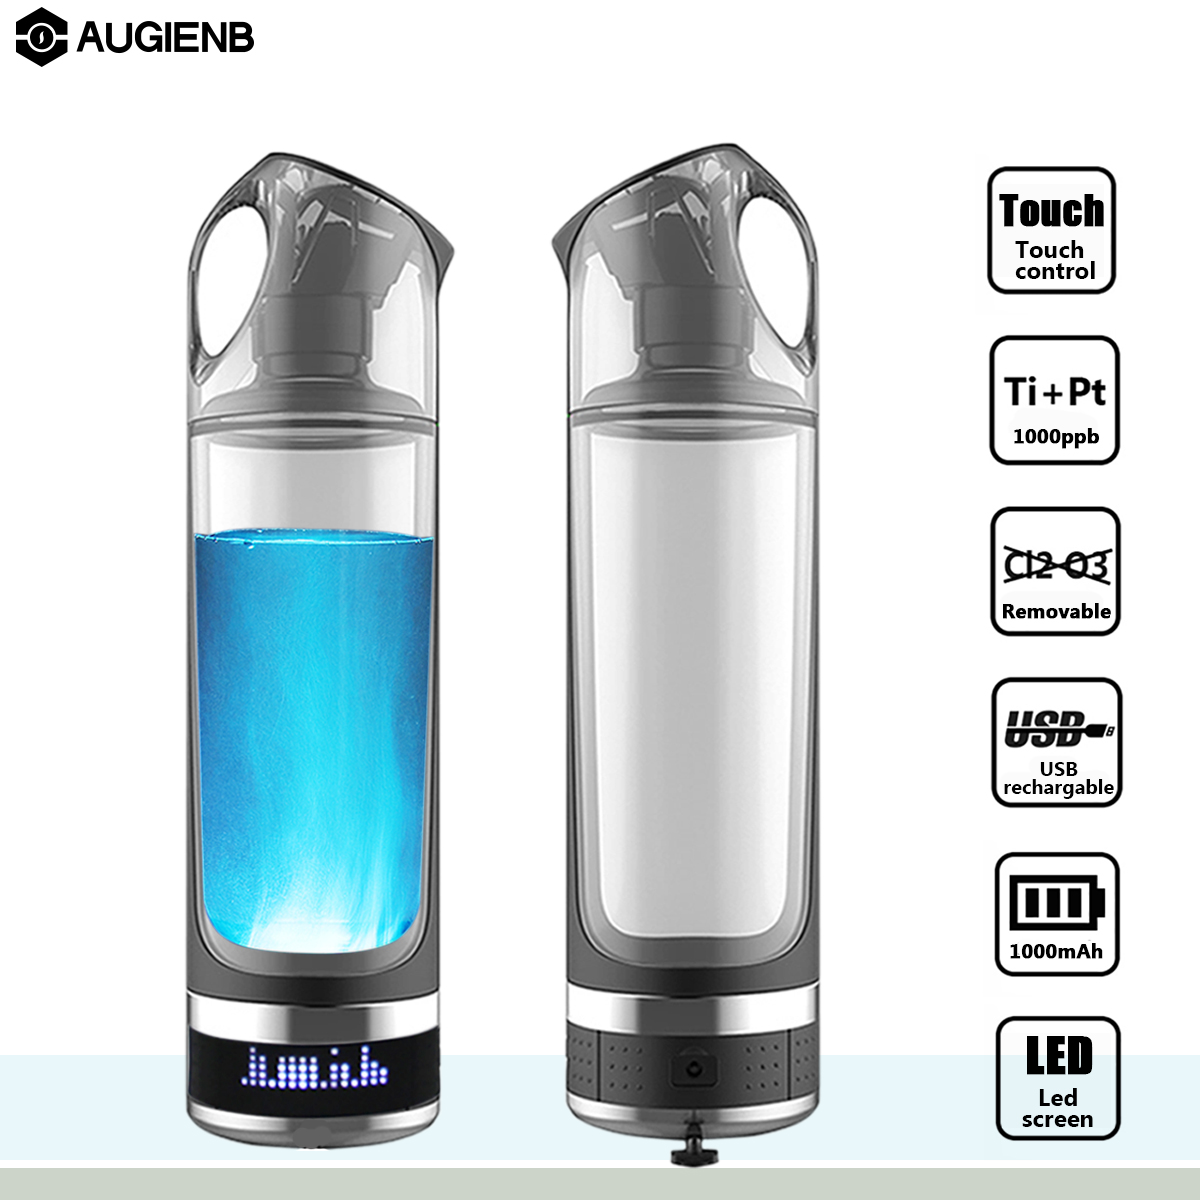 Augienb Healthy Anti-Aging Hydrogen Rich Water Bottle Generator 500ML LED Display Hydrogen Rich Water Maker Ionizer BPA-free